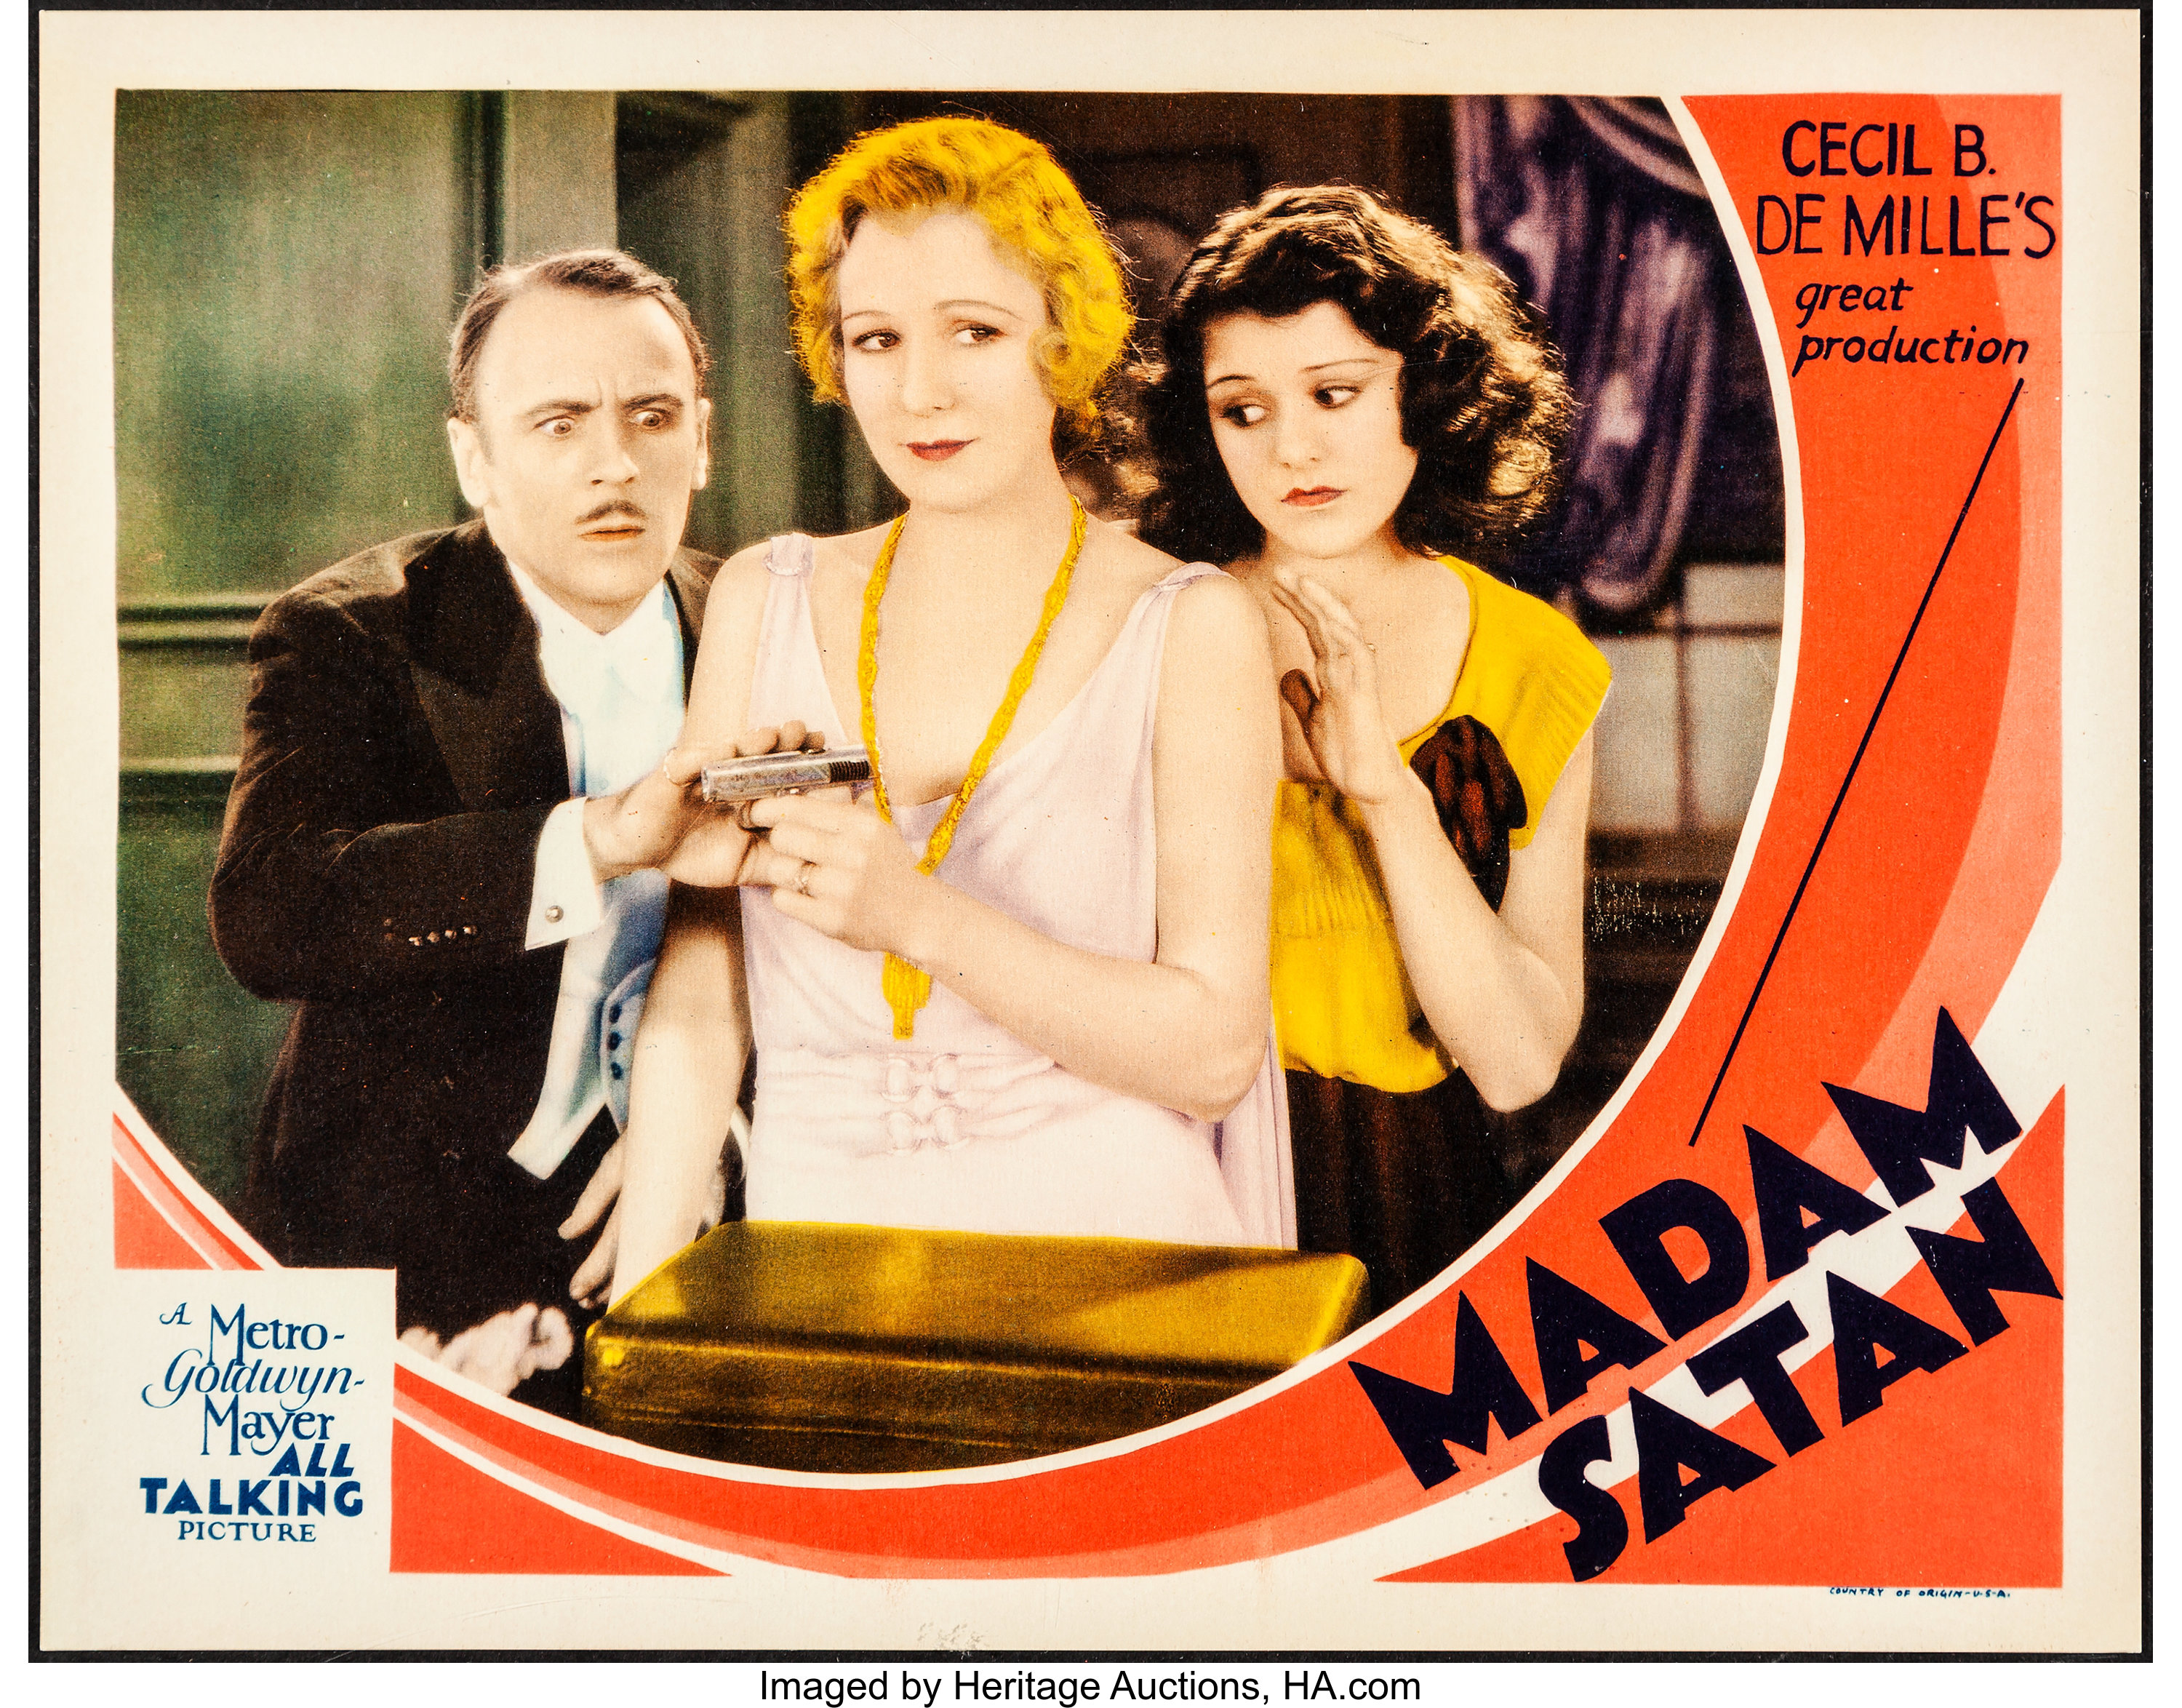 Madam Satan Cecil B DeMille 1930 movie poster print